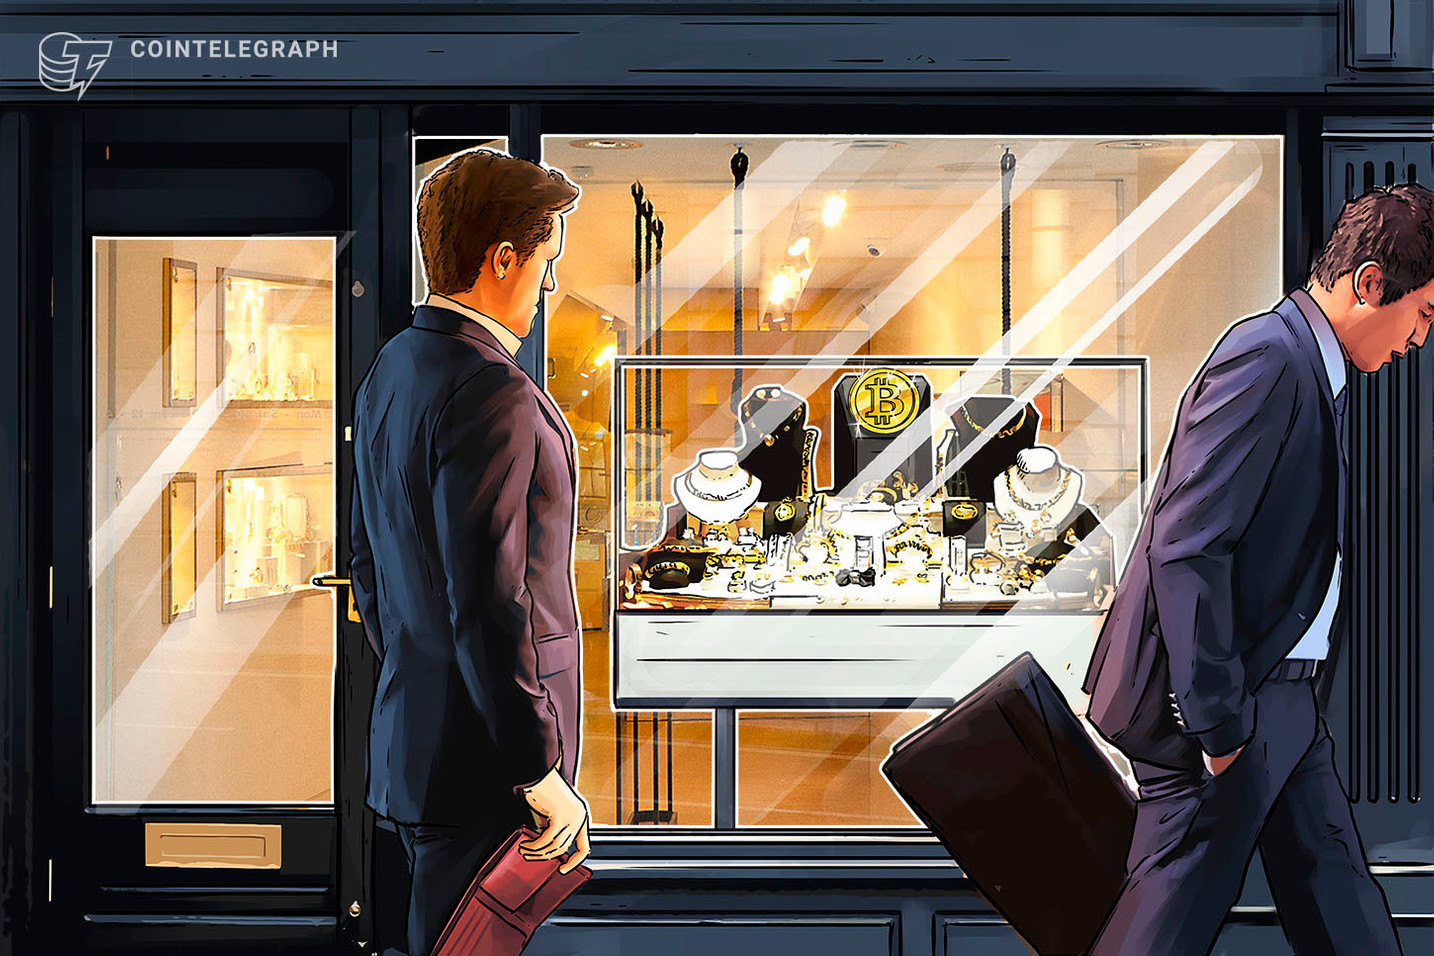 Canada: Birks Group Jewelry Retail Giant Begins Accepting Bitcoin in Eight Locations